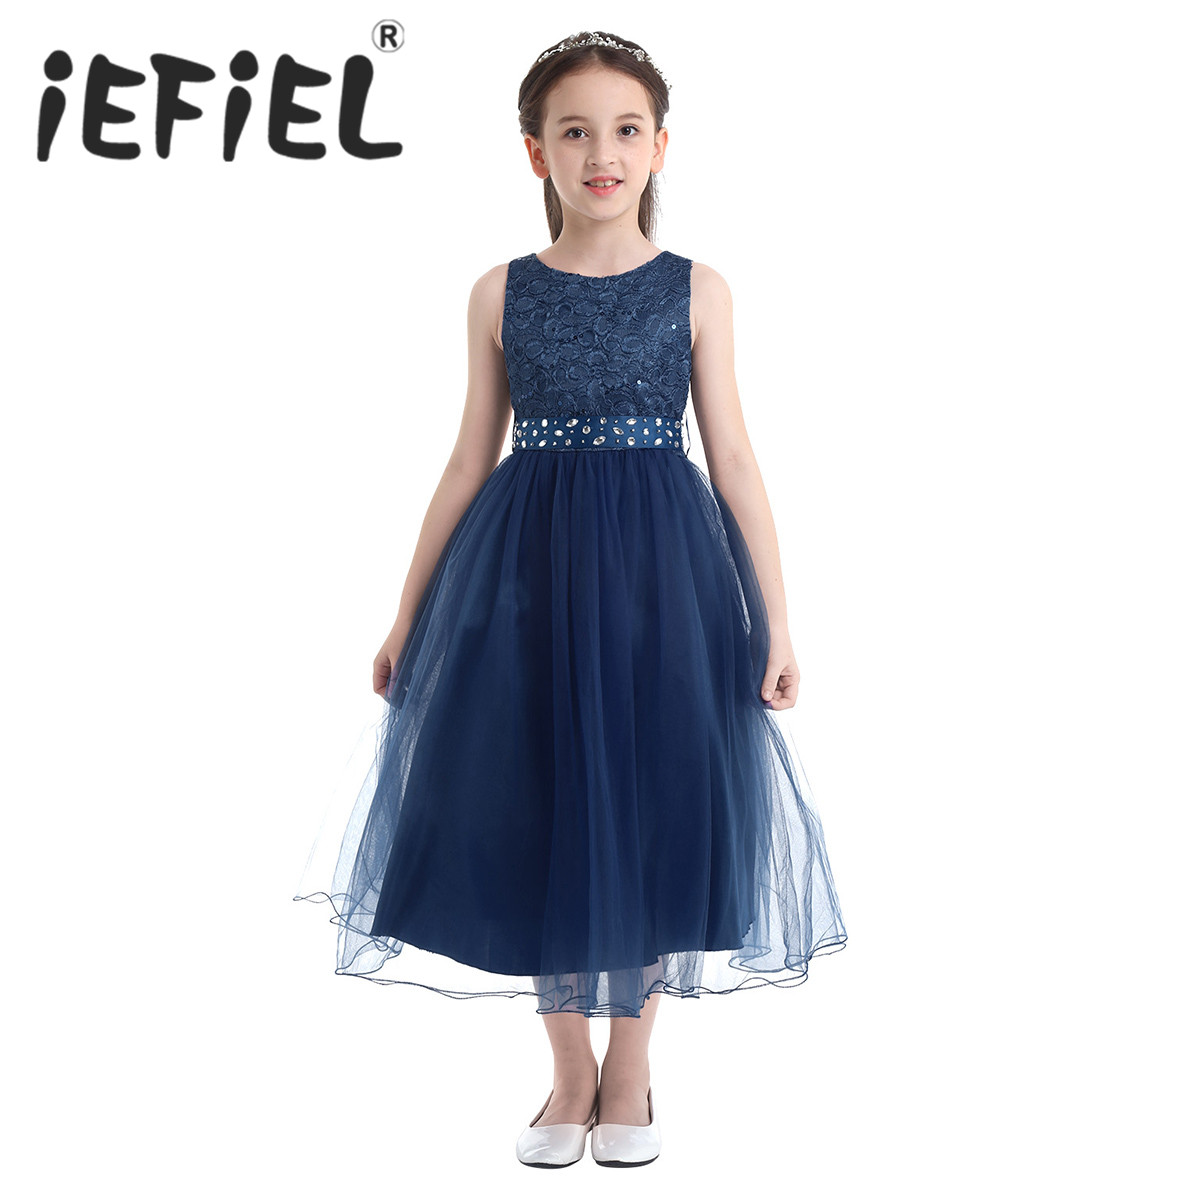 iEFiEL Elegant Sequined Kids Toddler Flower Girls Lace Dress Pageant Wedding Bridal Children Bridesmaid Princess Tulle Dress(China)